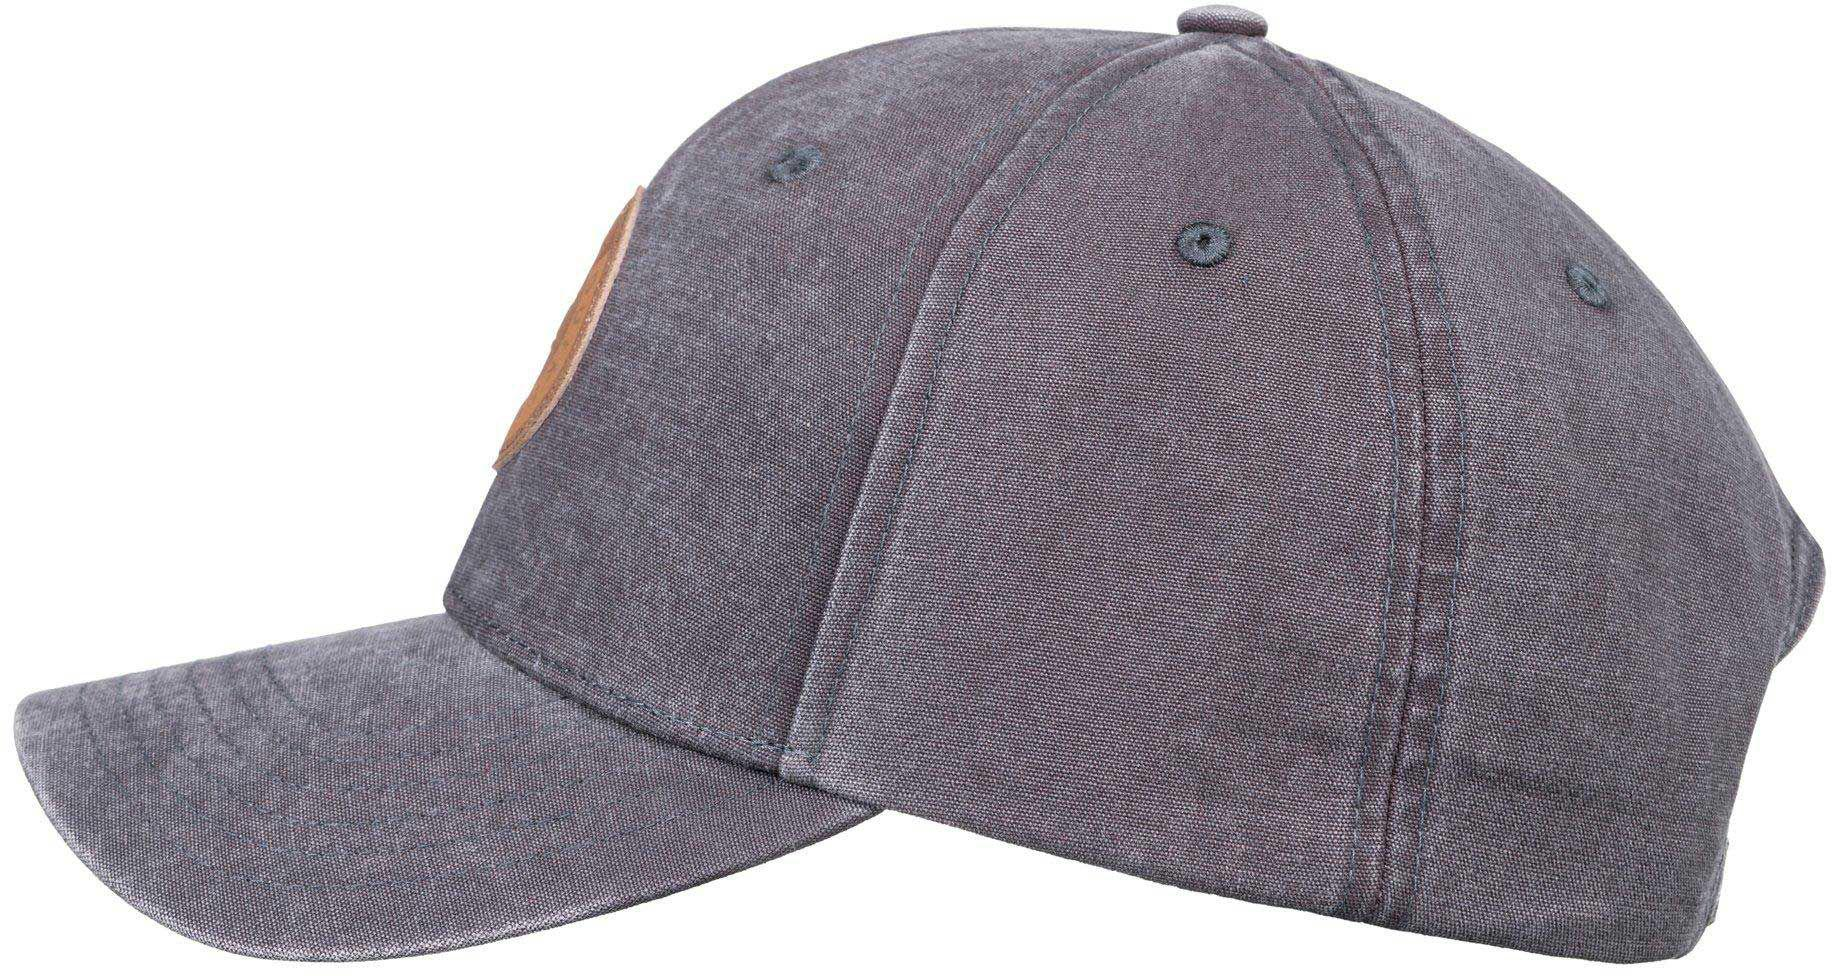 Lyst - Quiksilver Hues Buster Snapback Hat in Gray for Men f0766d82a3a